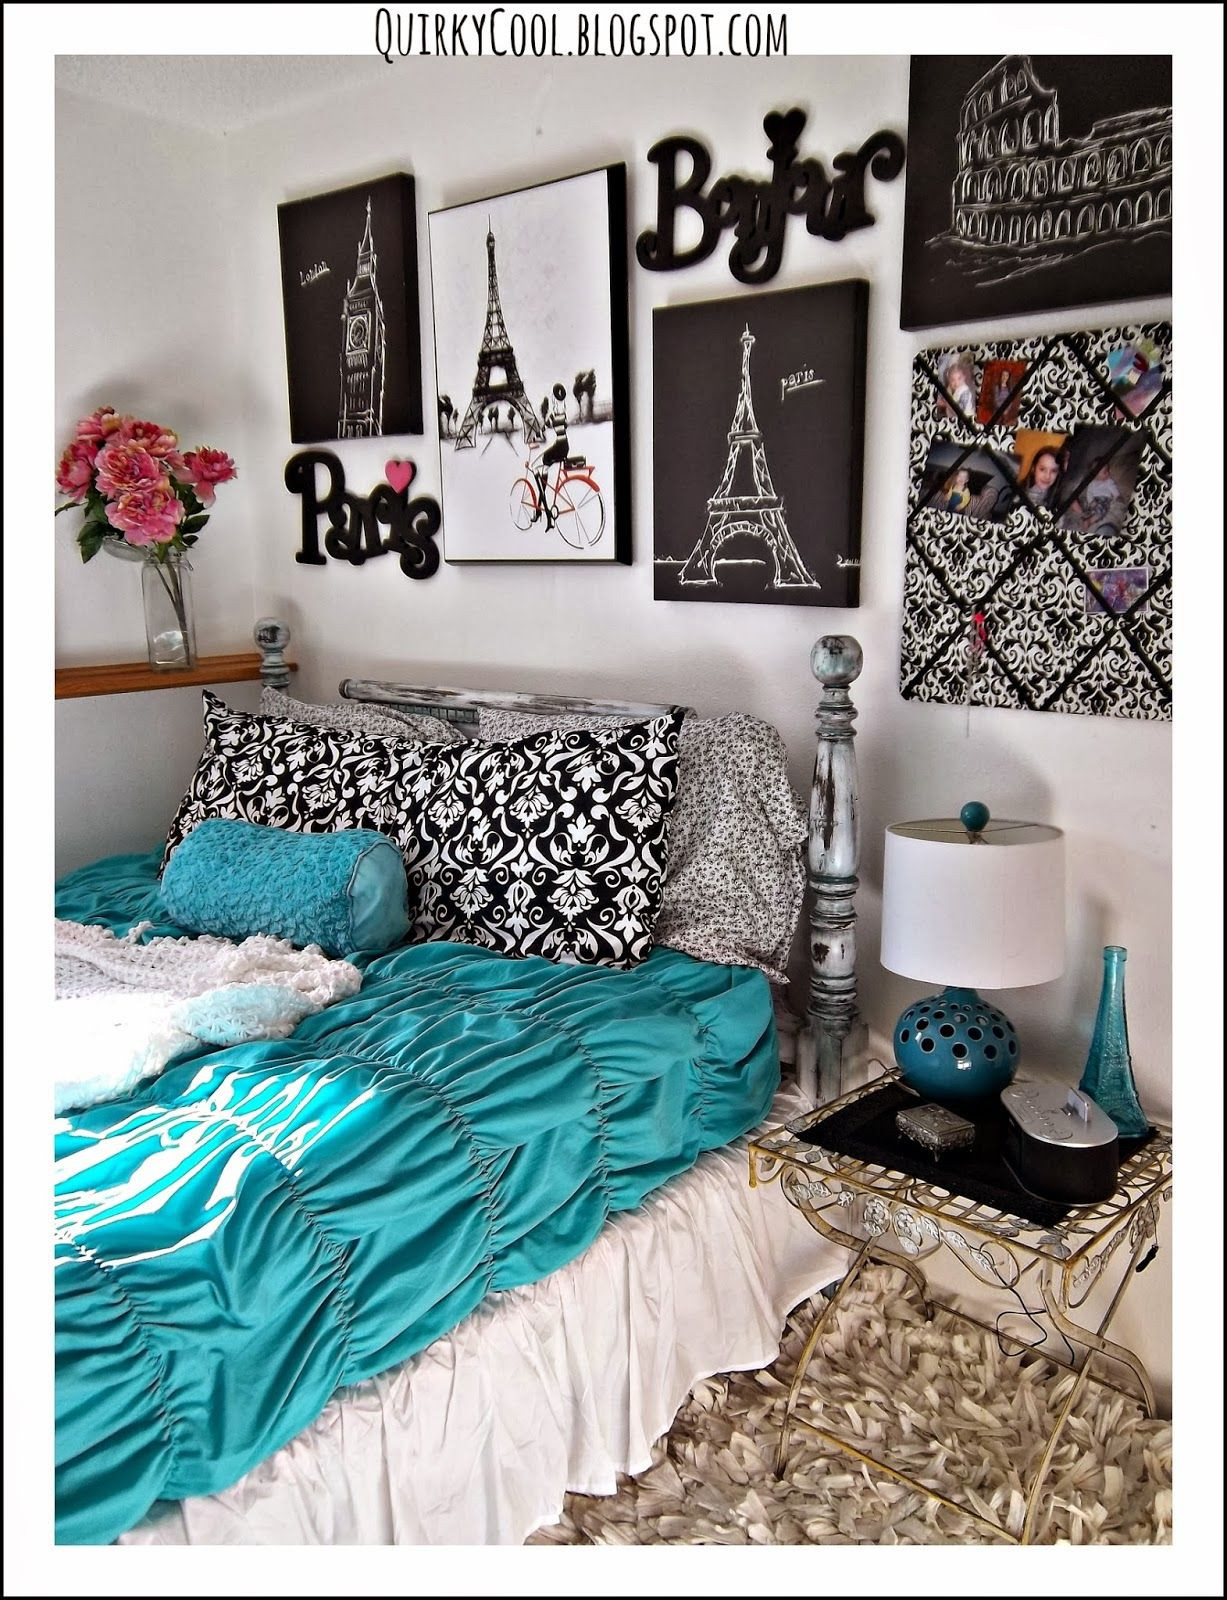 Best ideas about DIY Paris Room Decor . Save or Pin Quirky Cool A Parisian Chic Room Now.